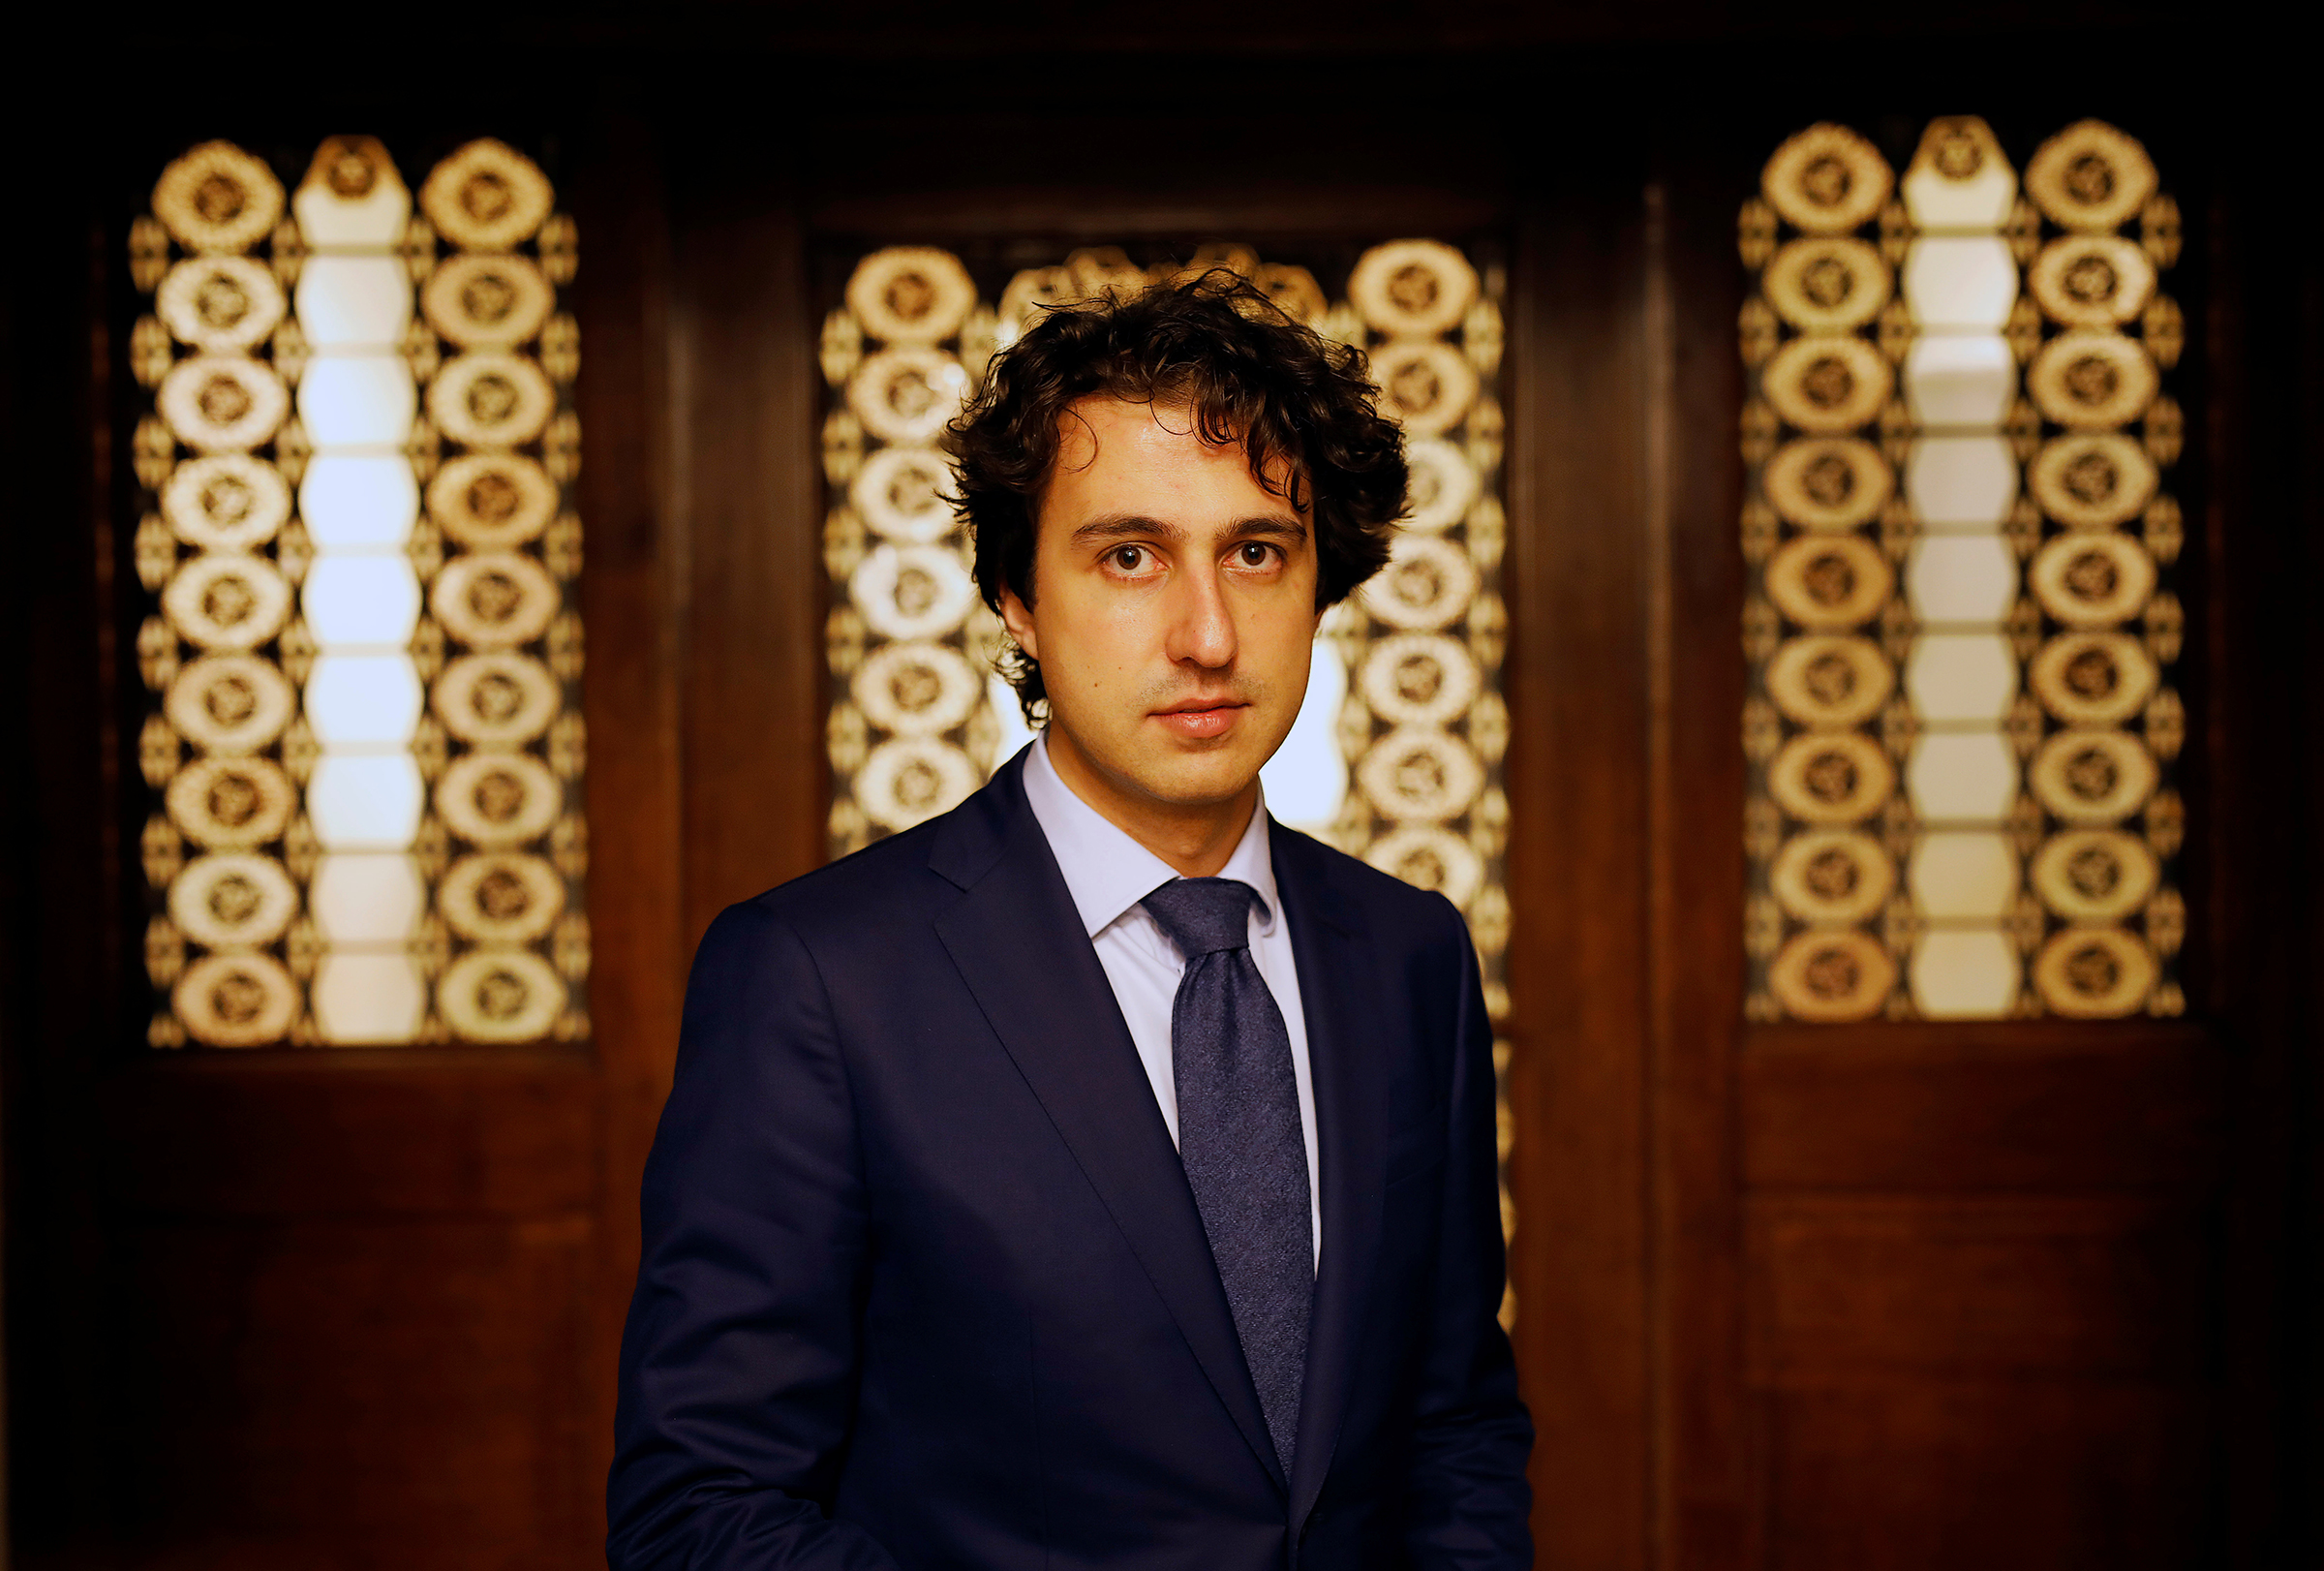 Klaver, photographed in the Hague in March 2017, helped push the Dutch parliament to adopt one of the world's toughest climate bills in 2018.